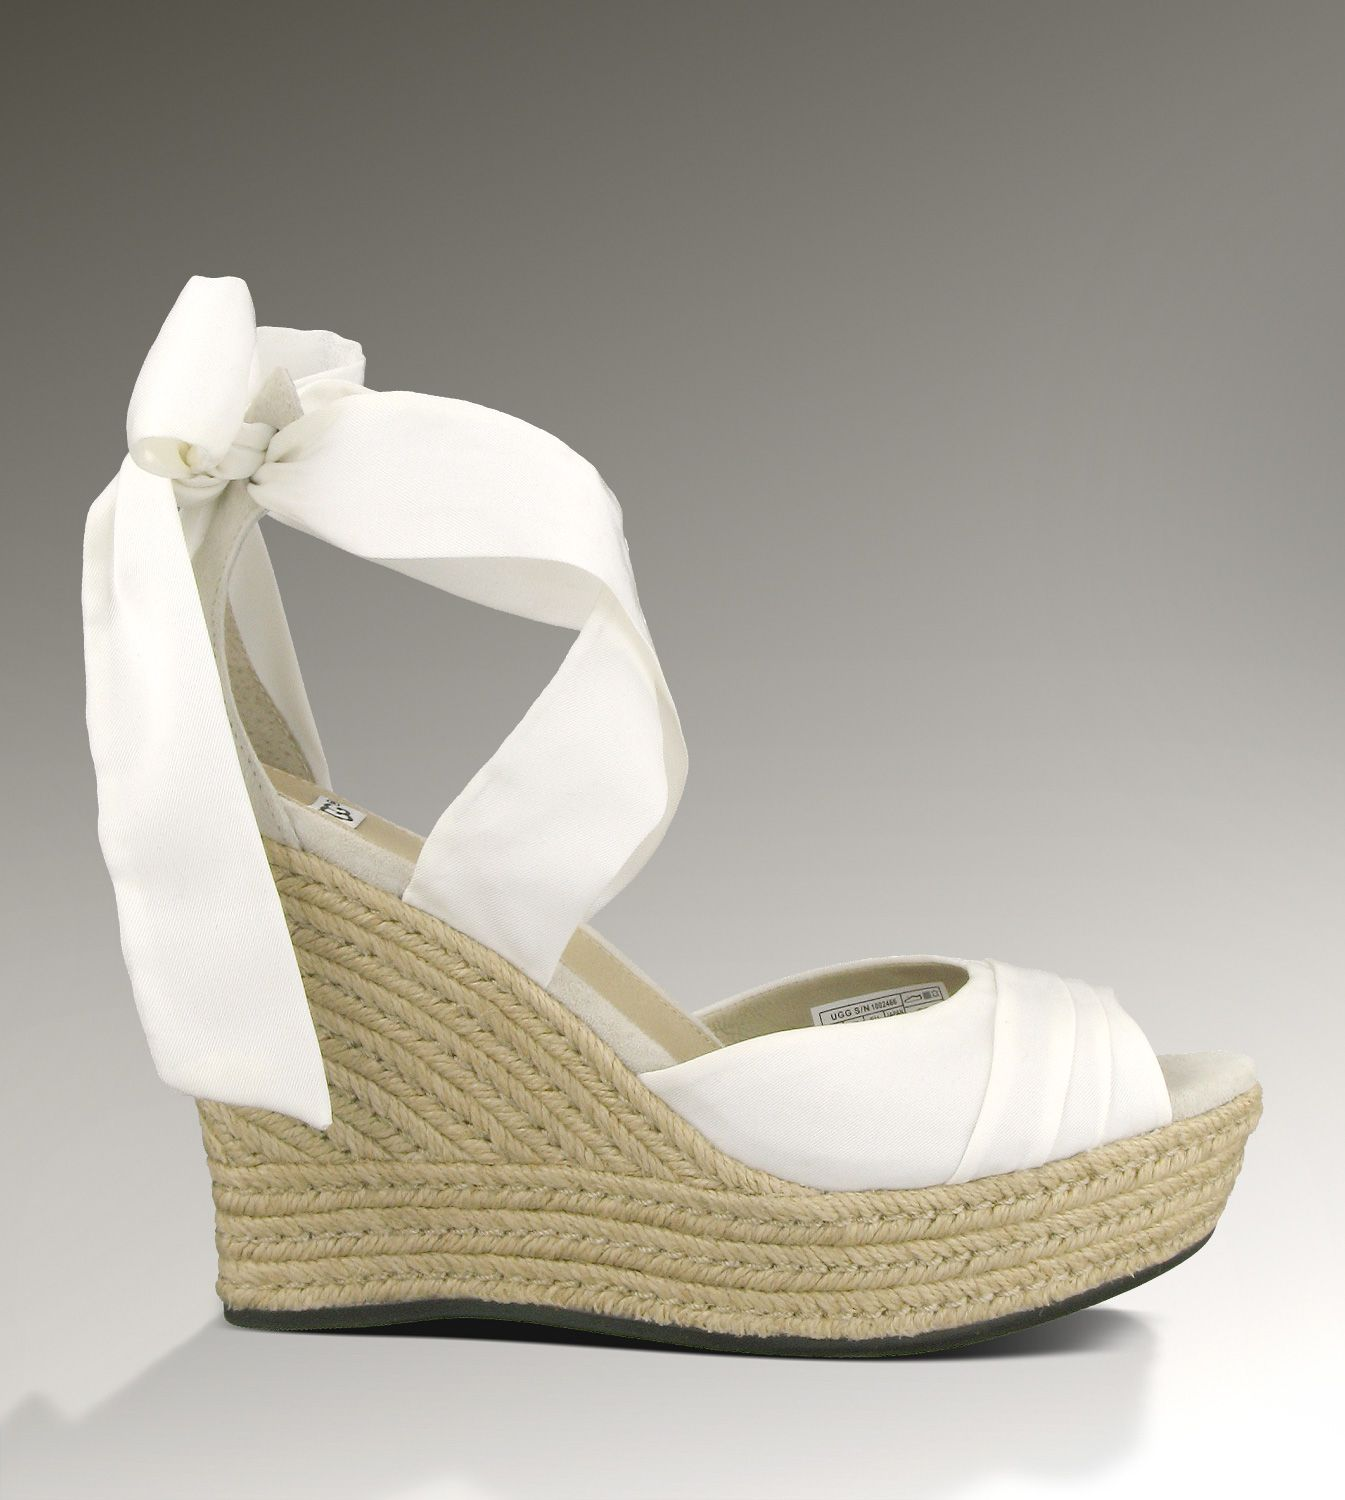 90099104e7c RECRUITMENT: UGG® Lucianna for Women - White | Espadrille Wedge ...